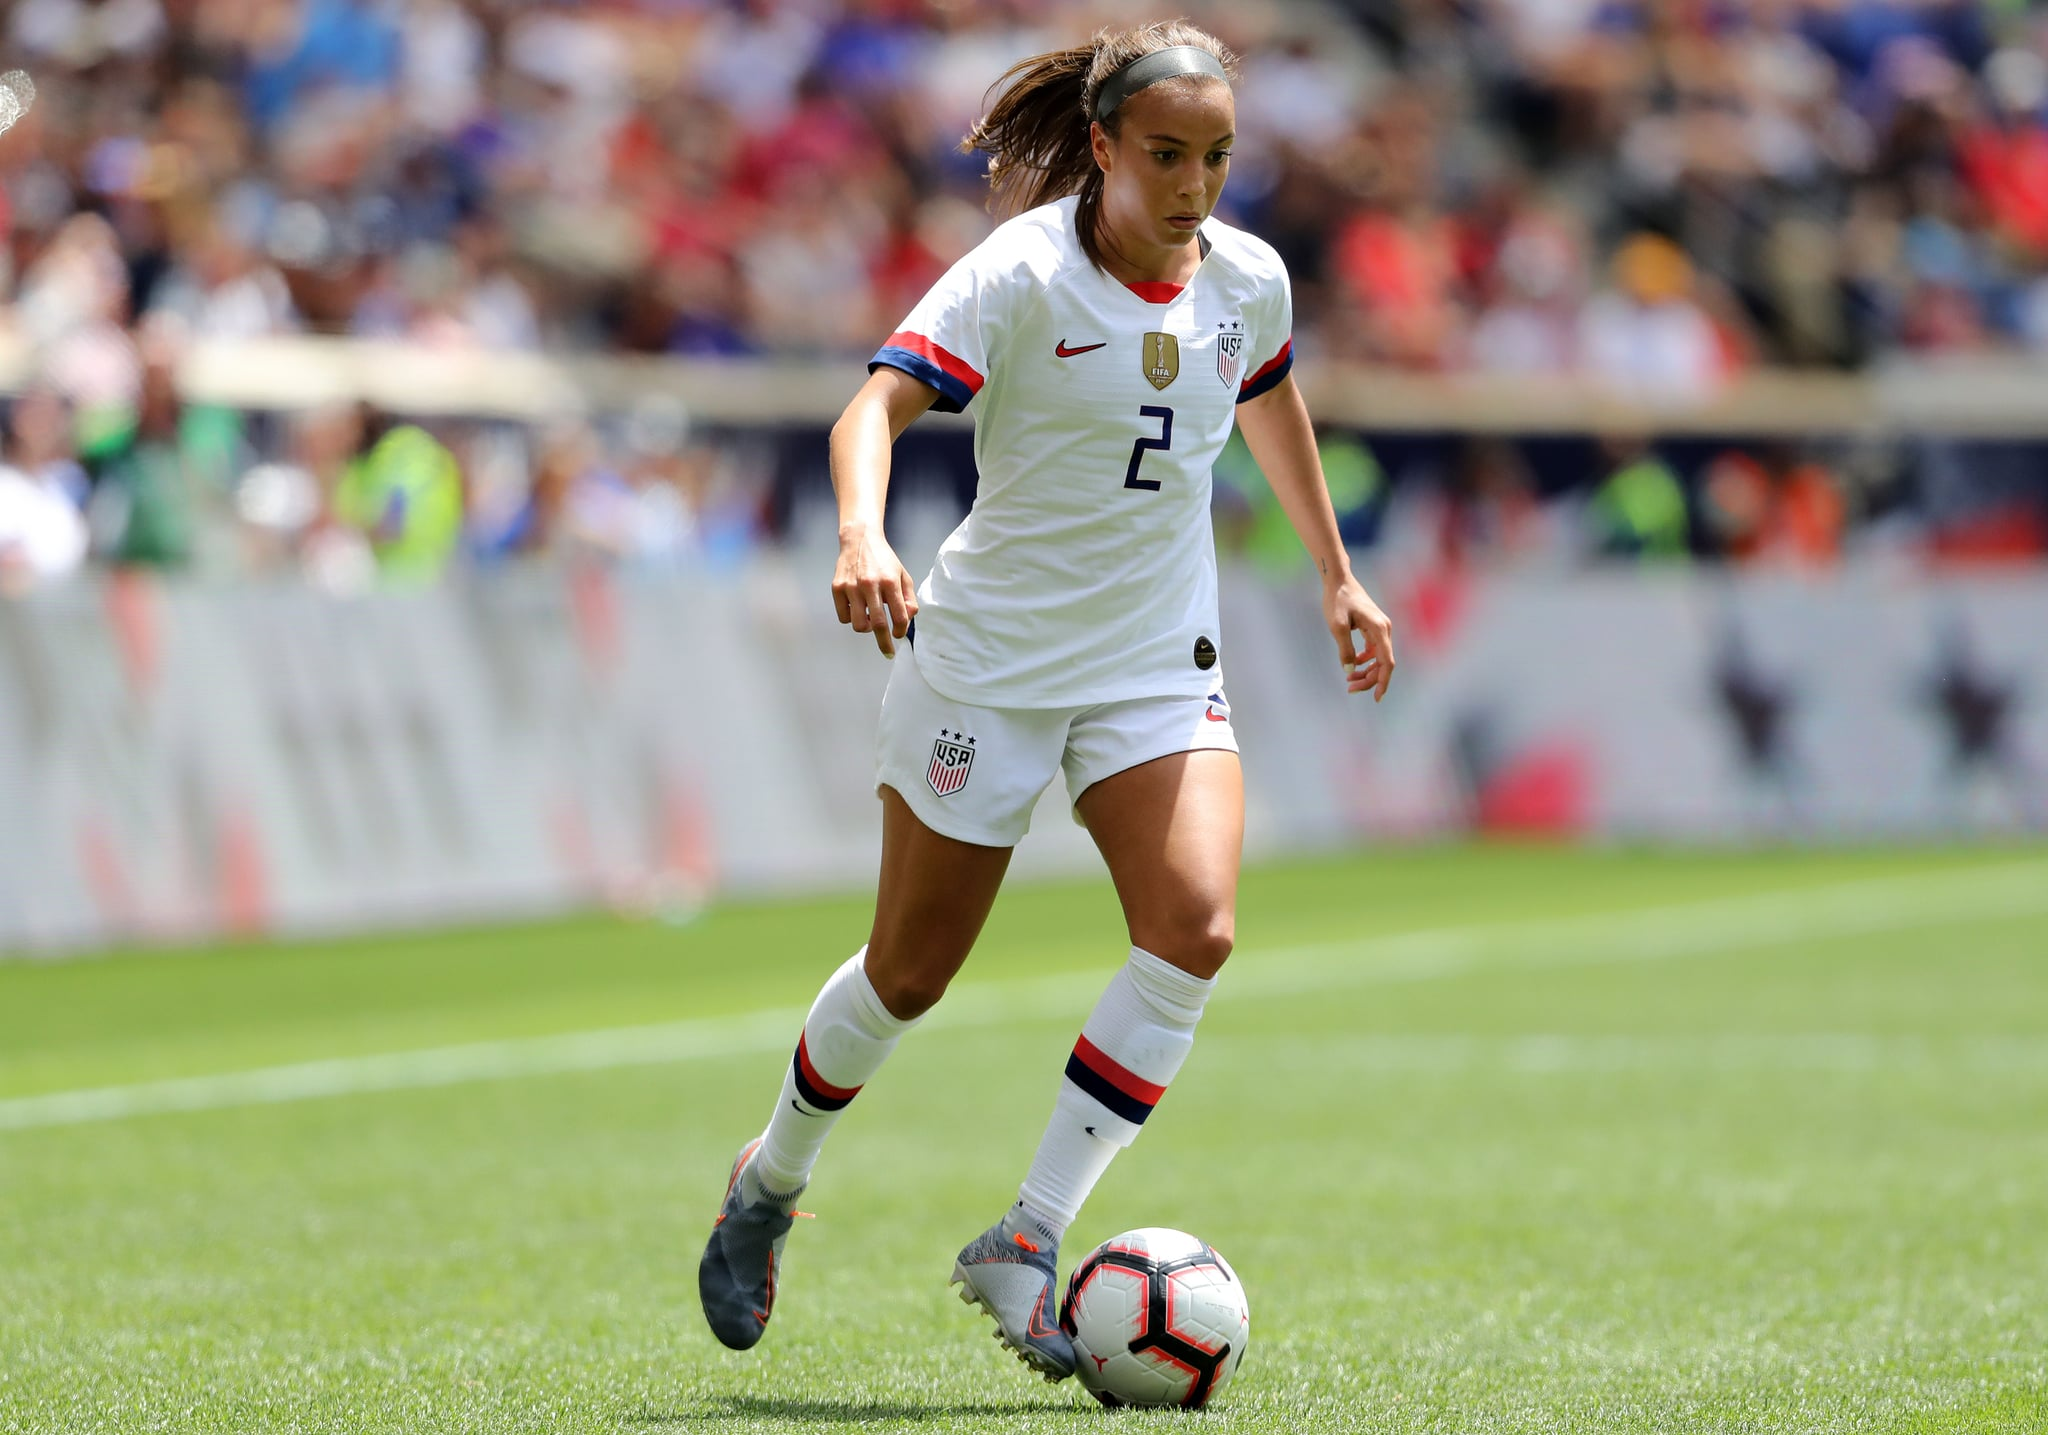 Meet Mal Pugh, the US Women's Soccer Phenom Who's Got the World at Her Feet